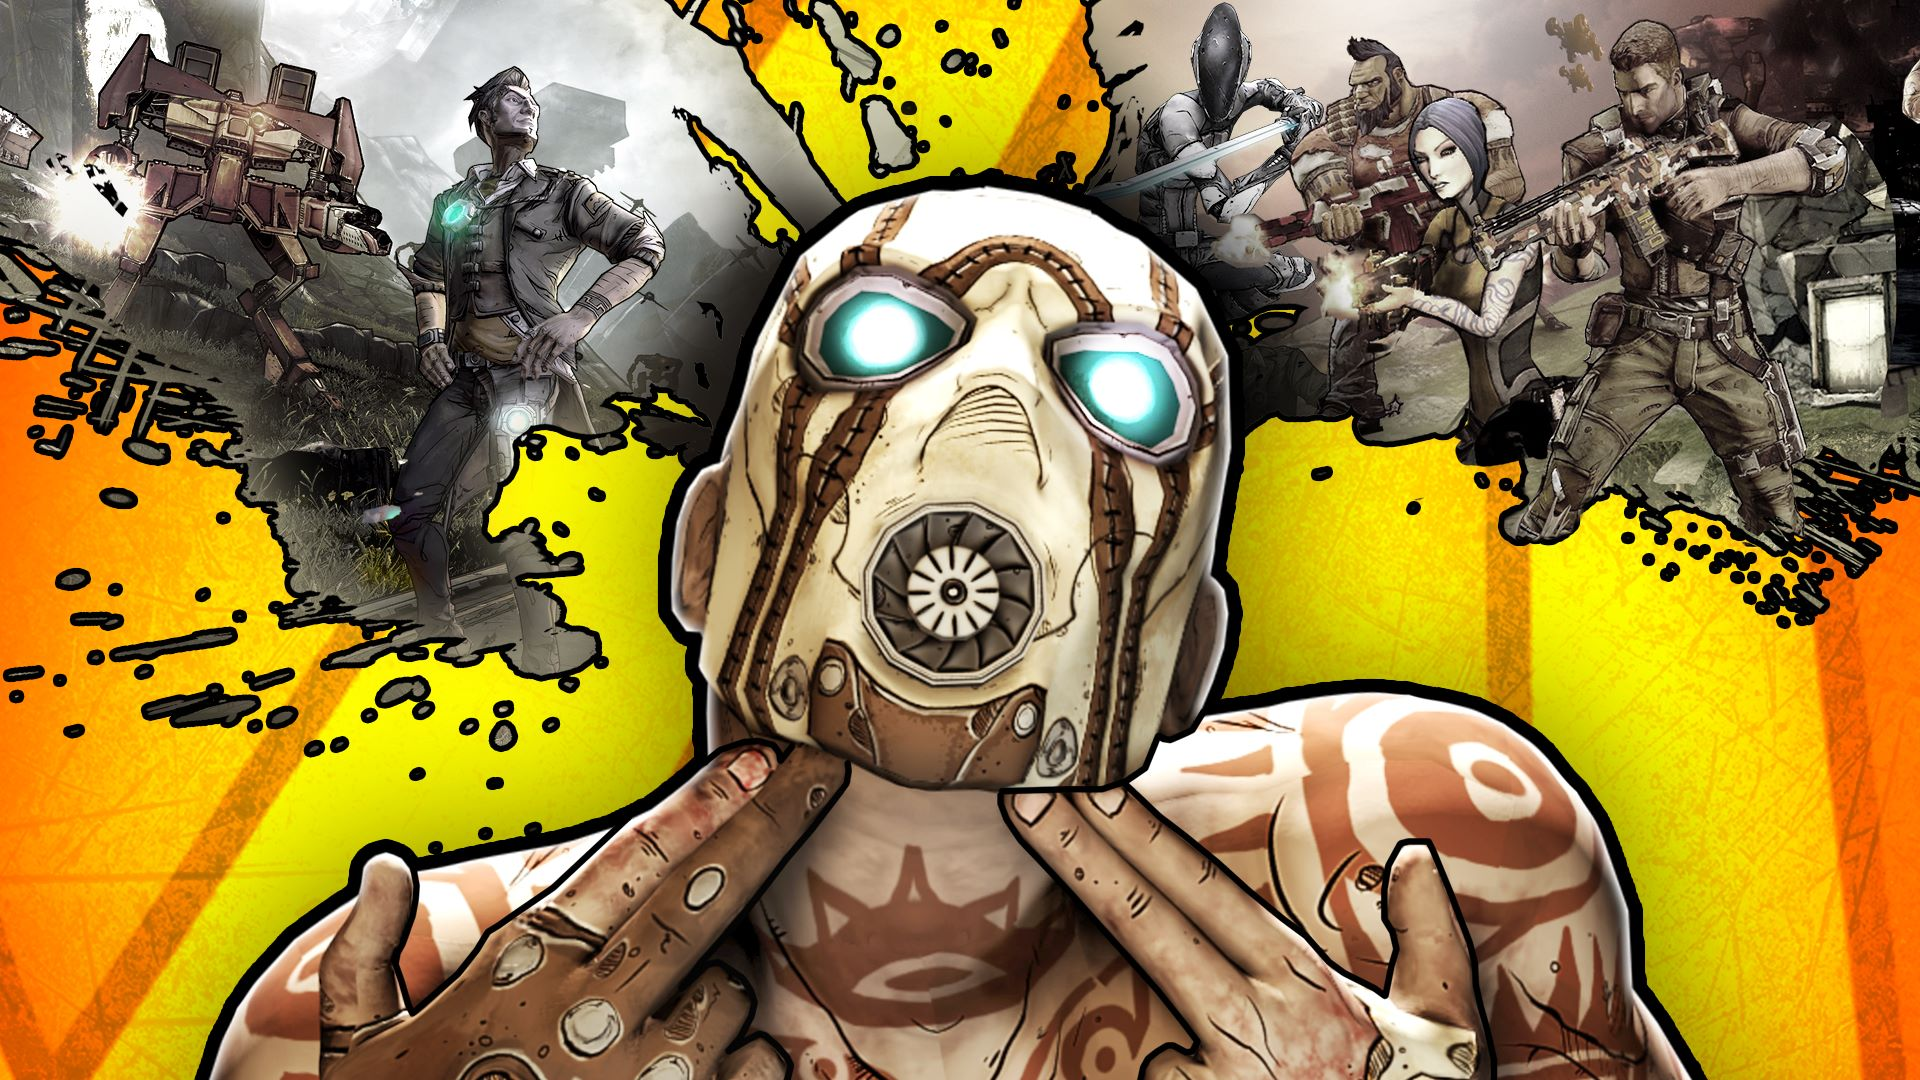 Gearbox plans to announce something big at PAX East 2019, leading many to believe the announcement may pertain to Borderlands 3.